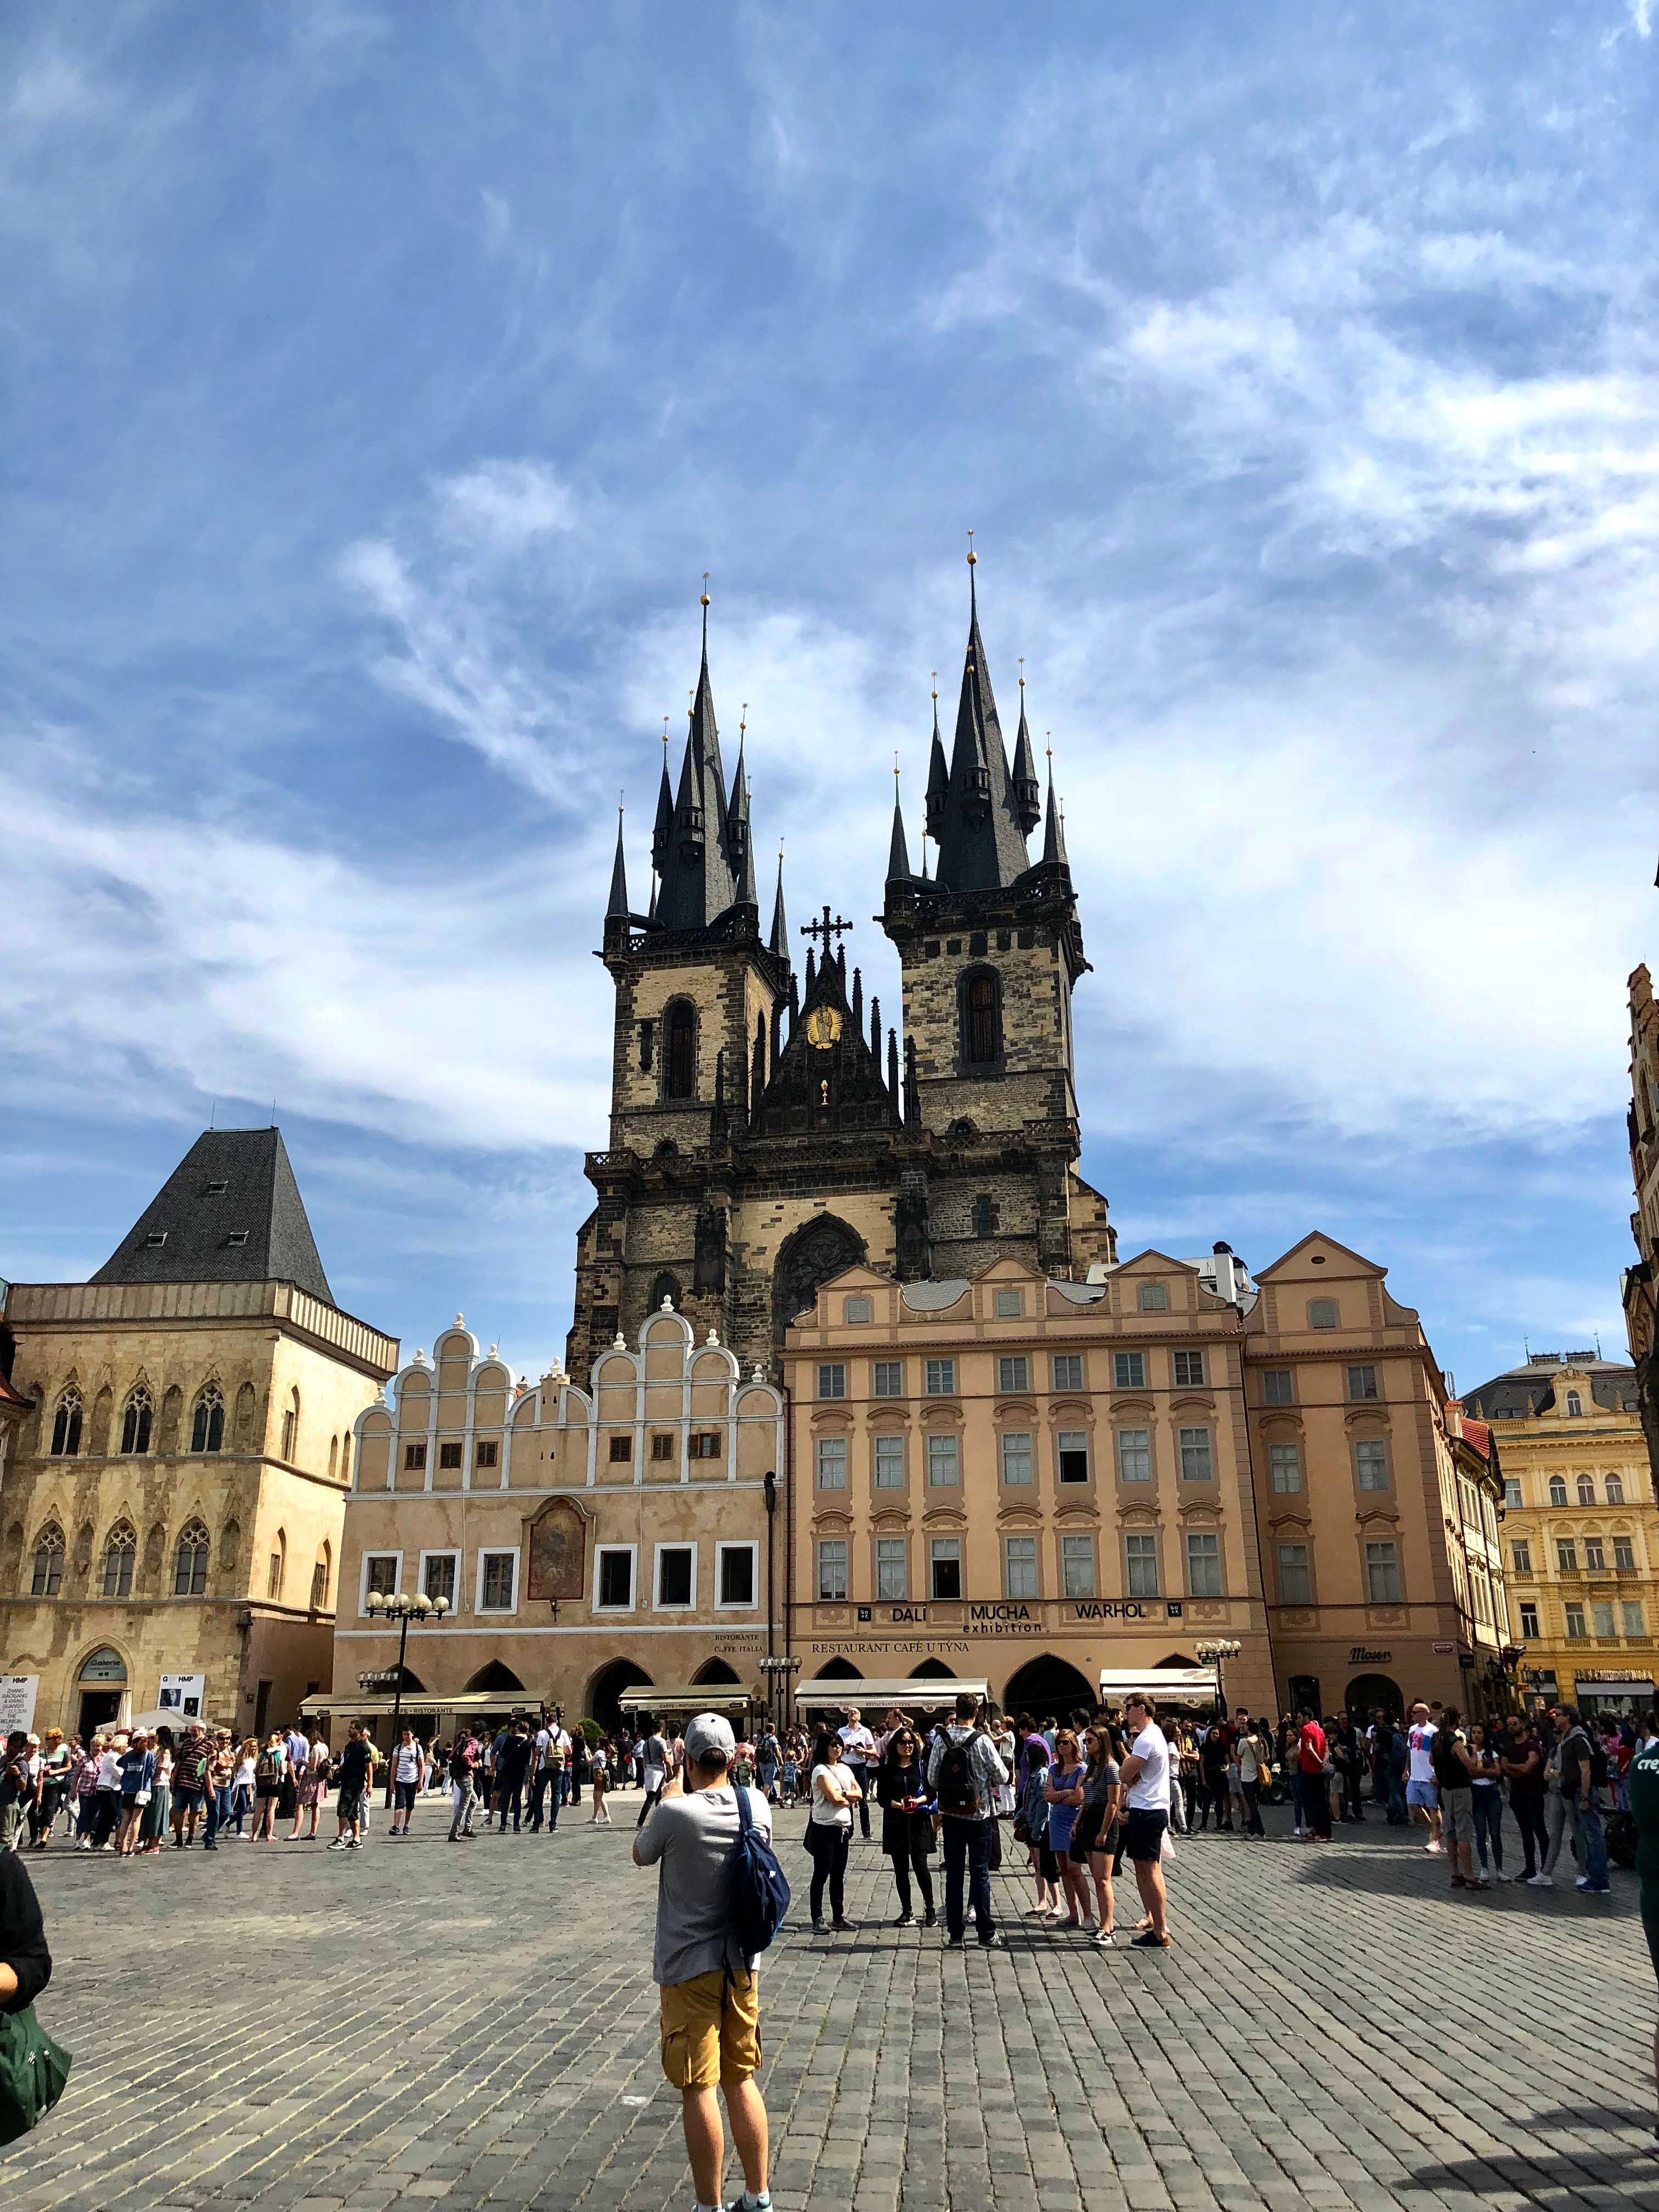 Kurztrip nach Prag mit Kids – Teil 01 // Travel to Prague Part 01 by http://babyrockmyday.com/kurztrip-nach-prag-teil-01/